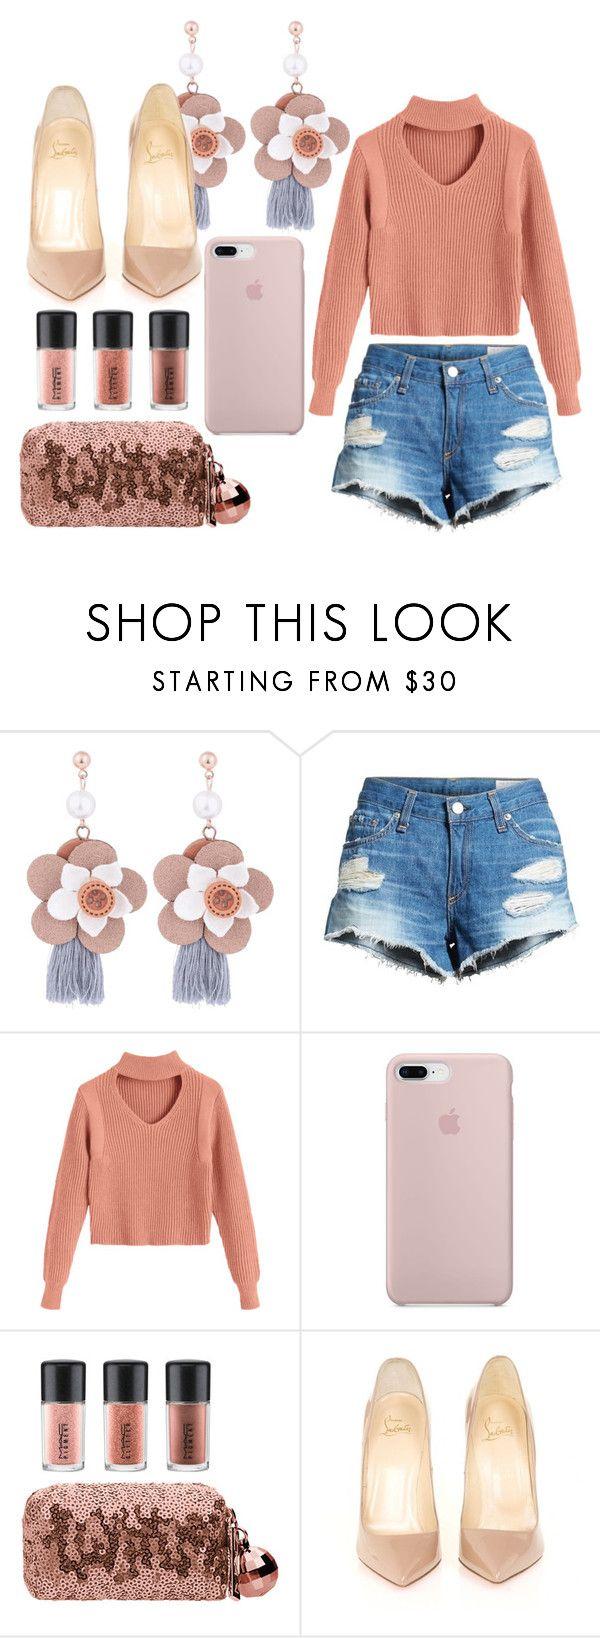 """Untitled #6444"" by mariaisabel701 ❤ liked on Polyvore featuring rag & bone/JEAN, MAC Cosmetics and Christian Louboutin"